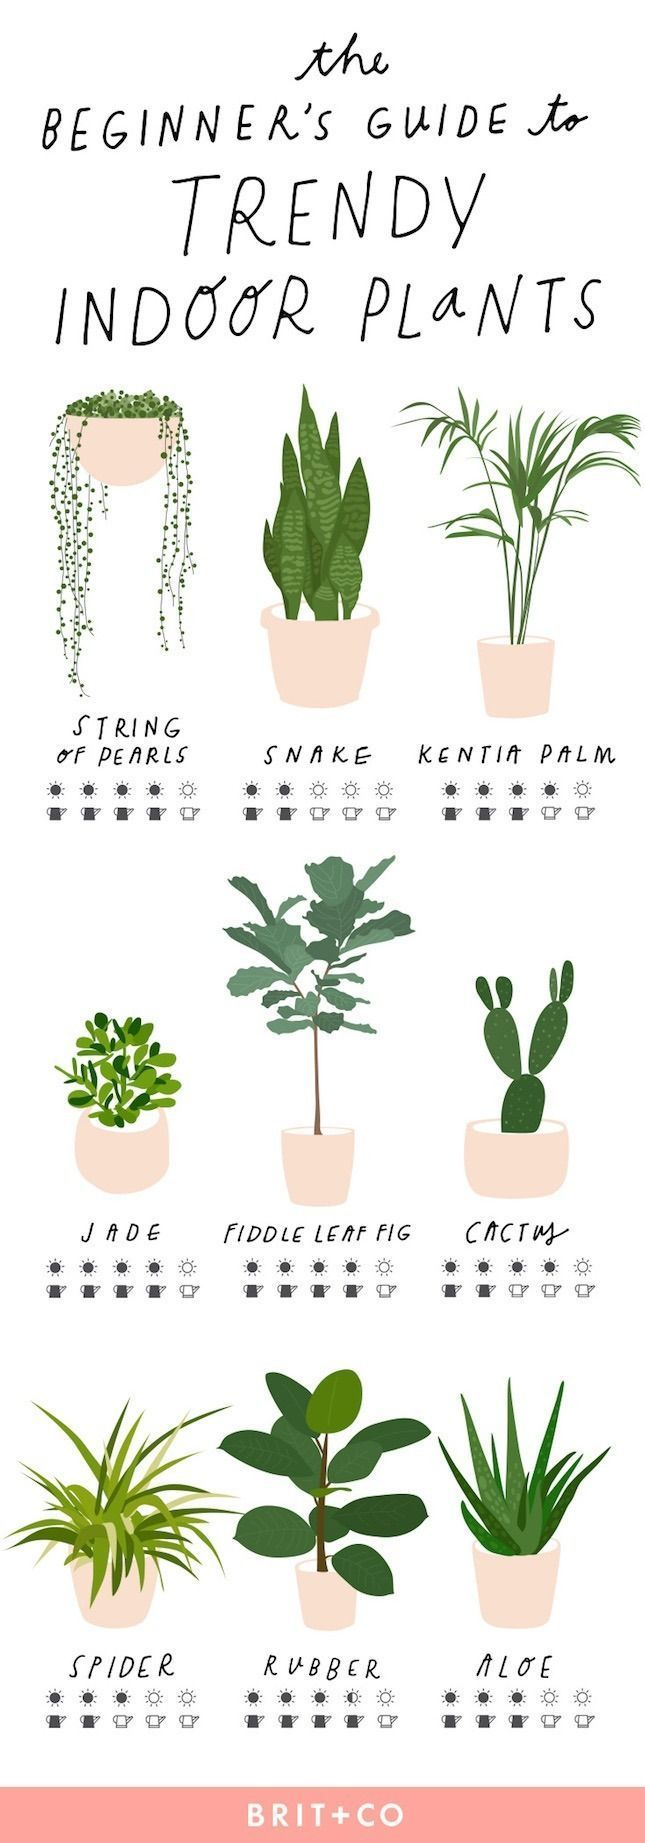 Keep your indoor plants strong + healthy with this simple beginner's guide to trendy indoor plants.